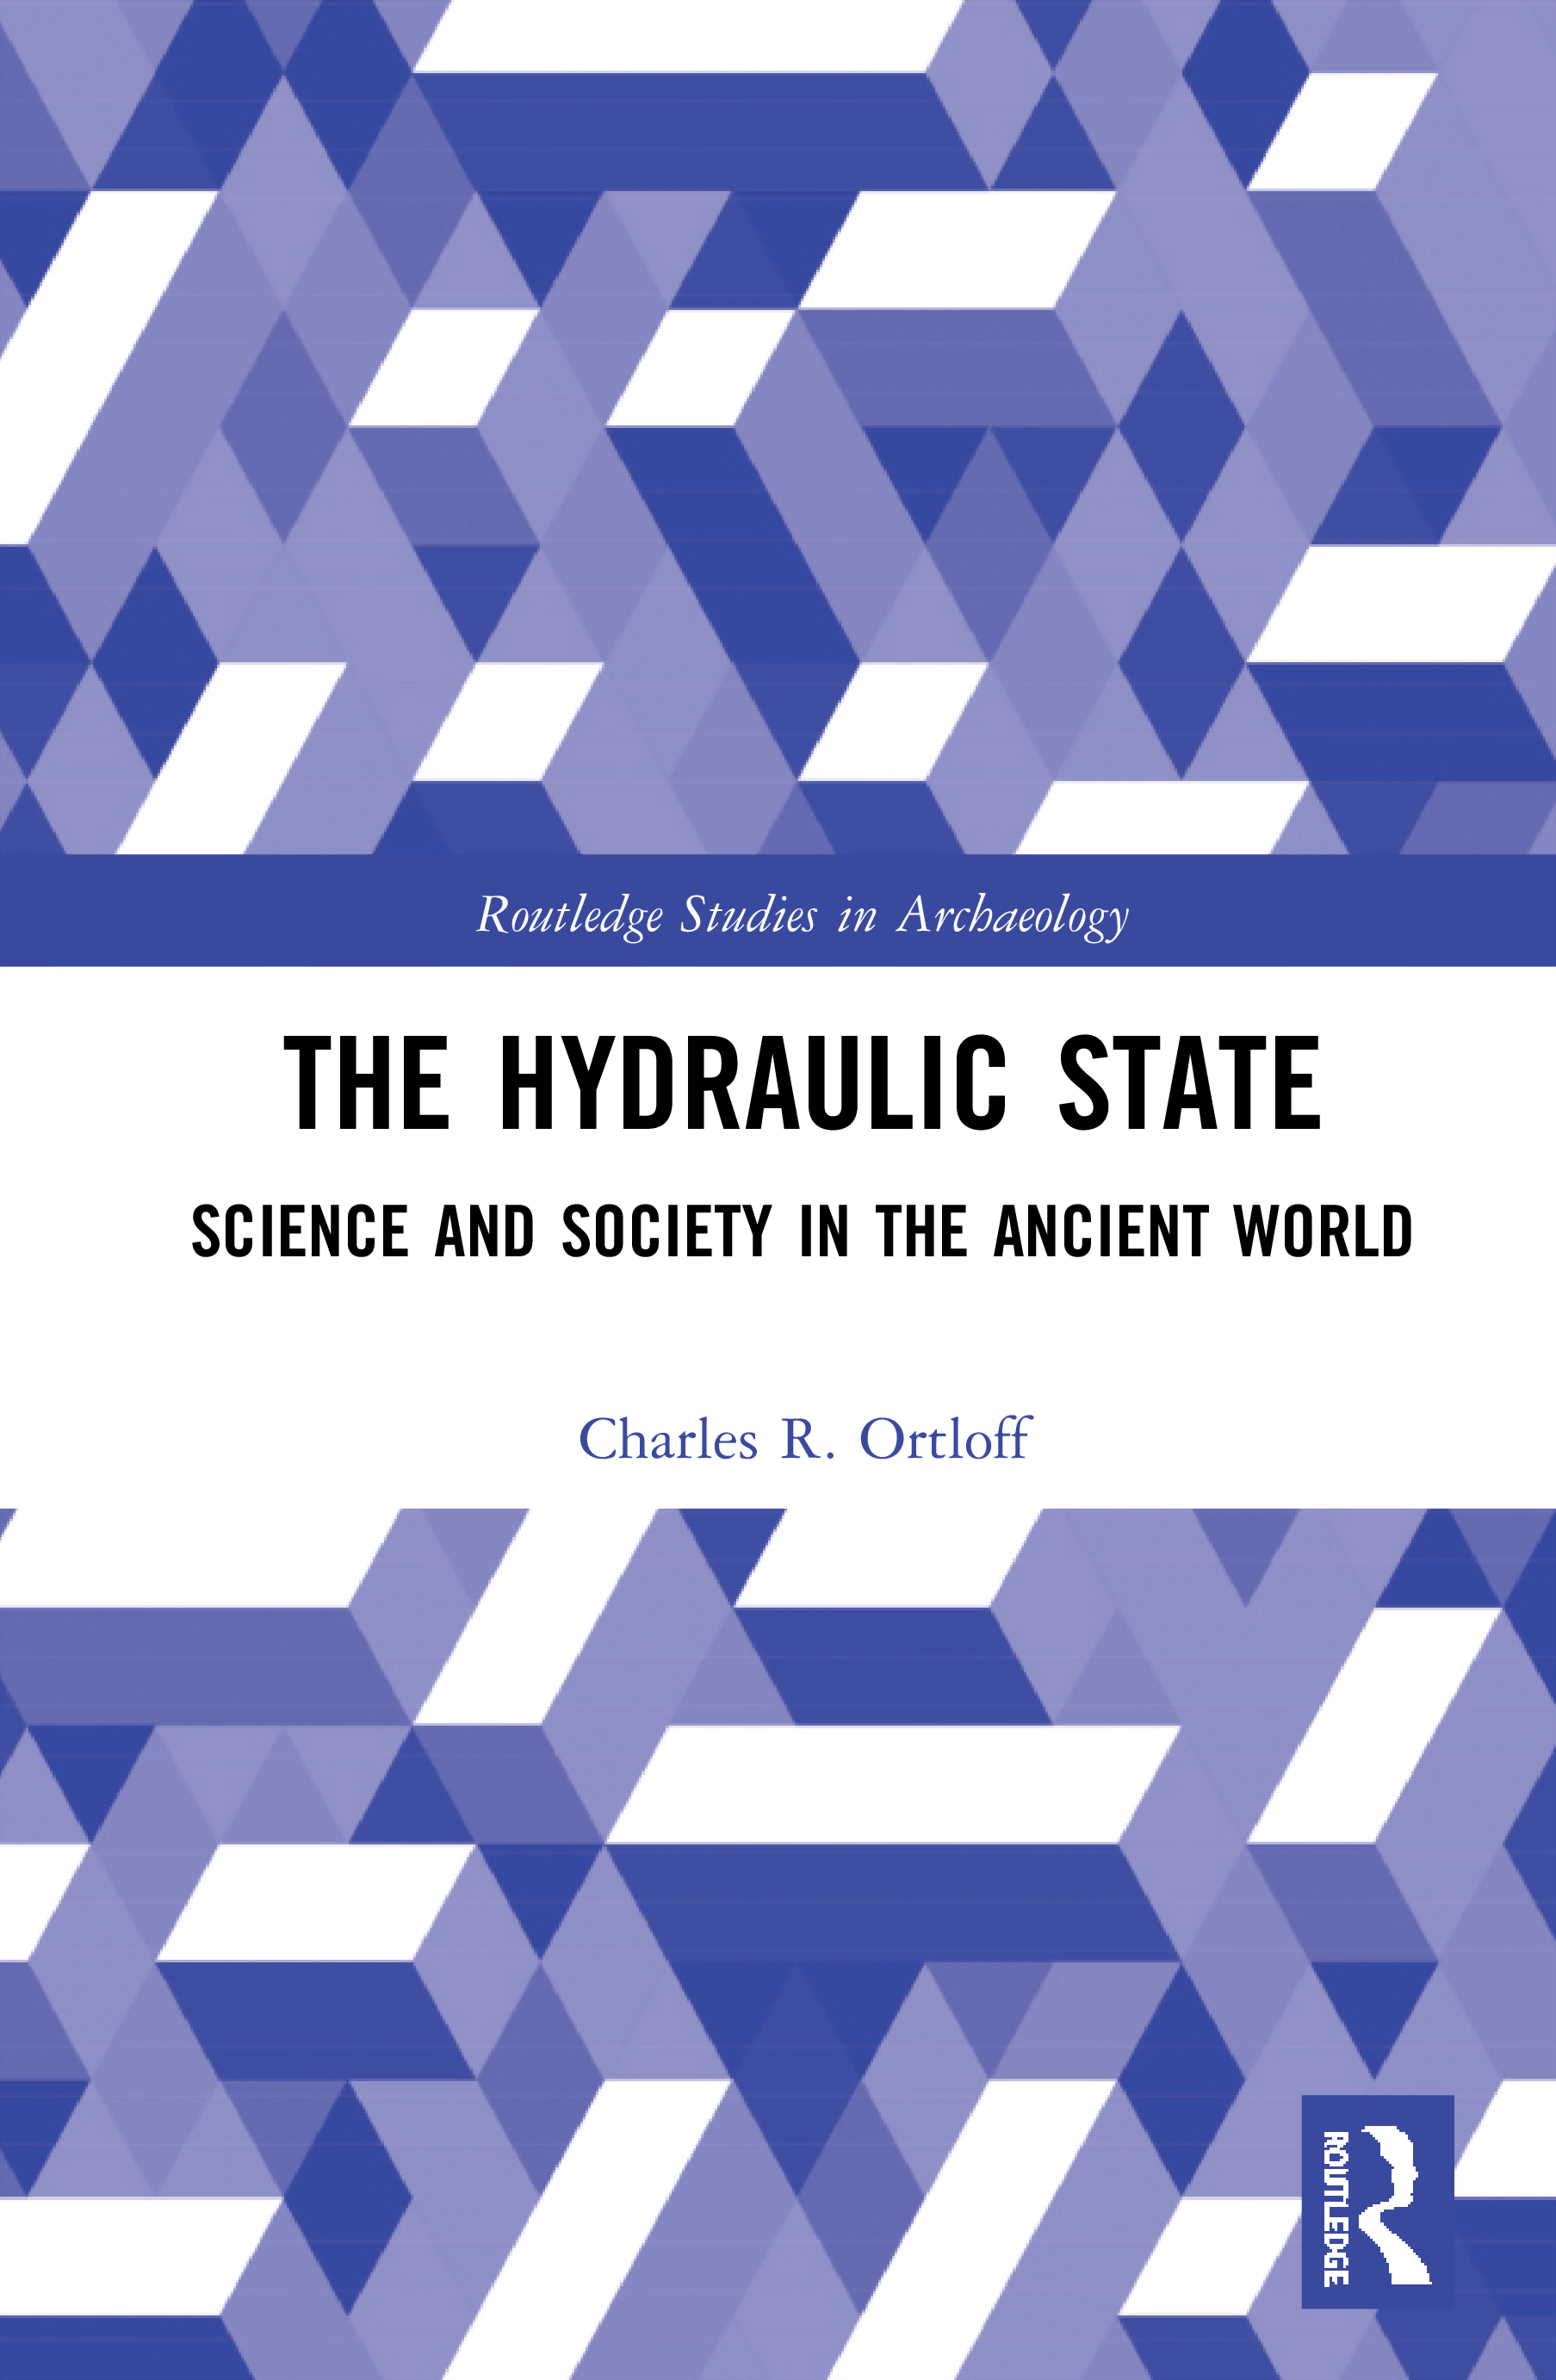 The Hydraulic State: Science and Society in the Ancient World book cover